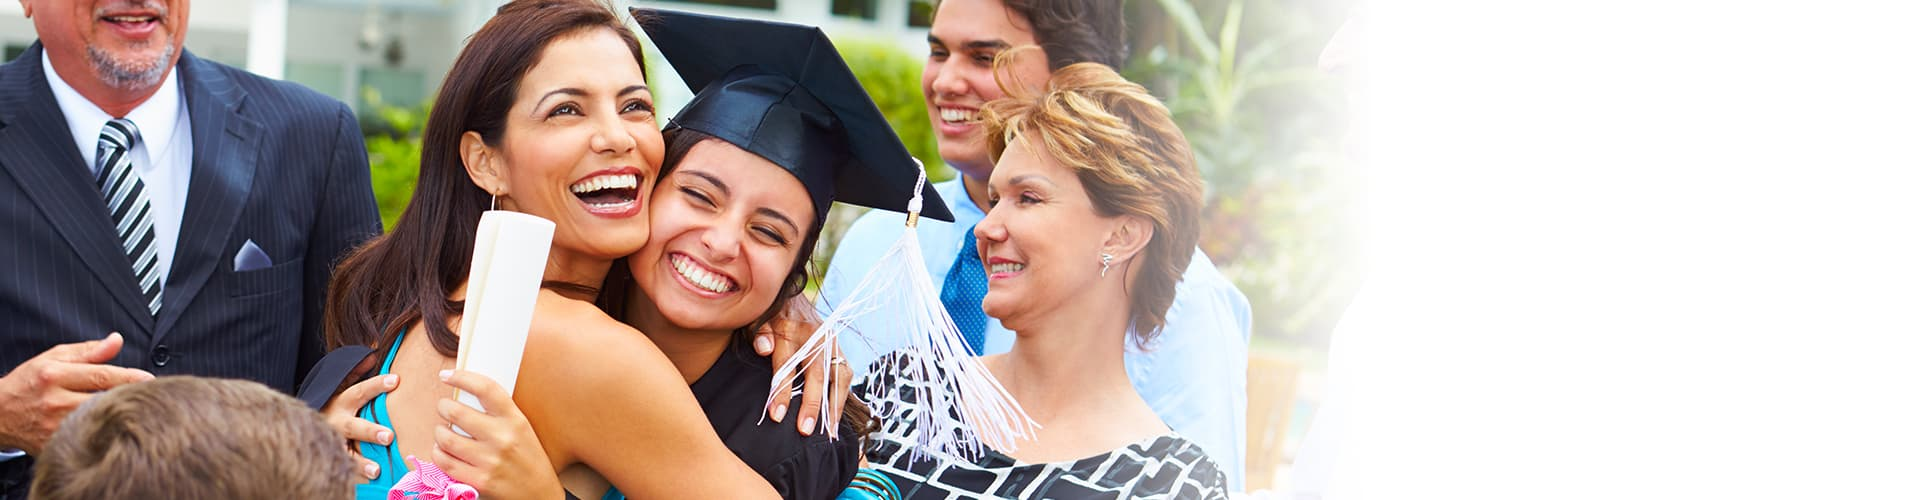 Woman hugging daughter who is wearing a cap and gown and holding her diploma